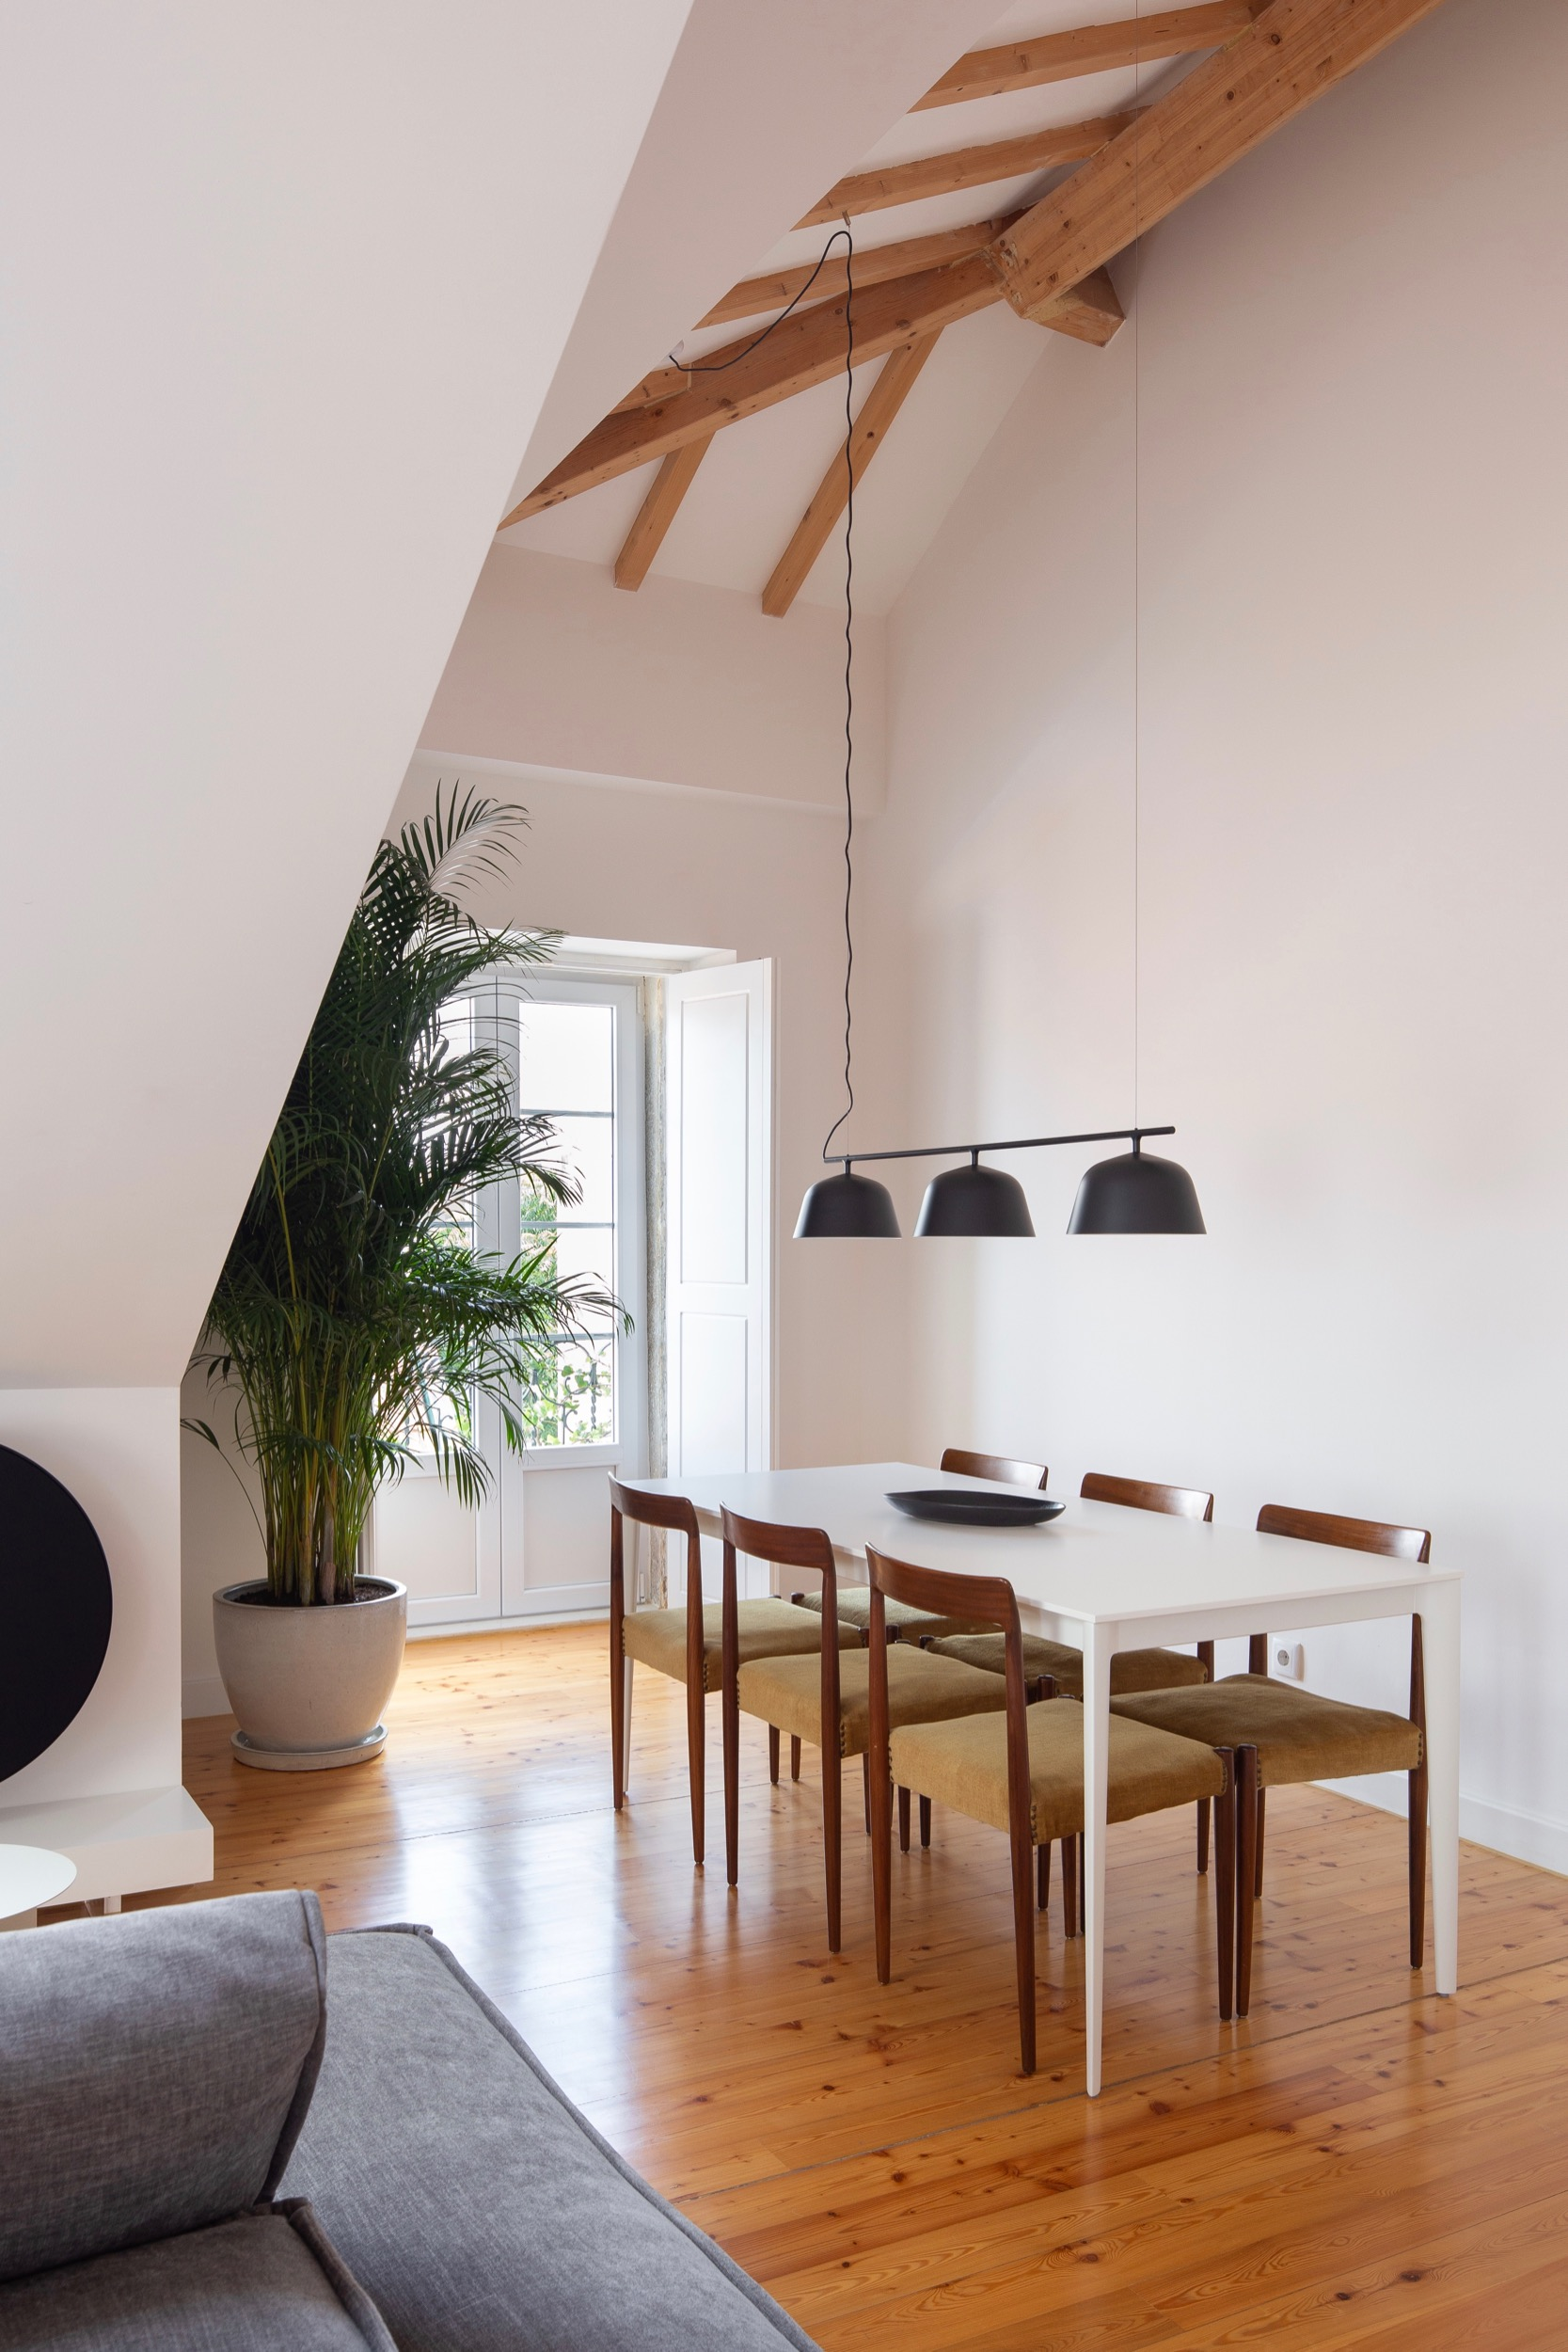 Photo of Lola Cwikowski Studio Travessa da Pereira Apartment residential project showing BoConcept table, Muuto Ambit Rail lamp, vintage dining chairs, B&O Beoplay A9 speaker, and large palm plant